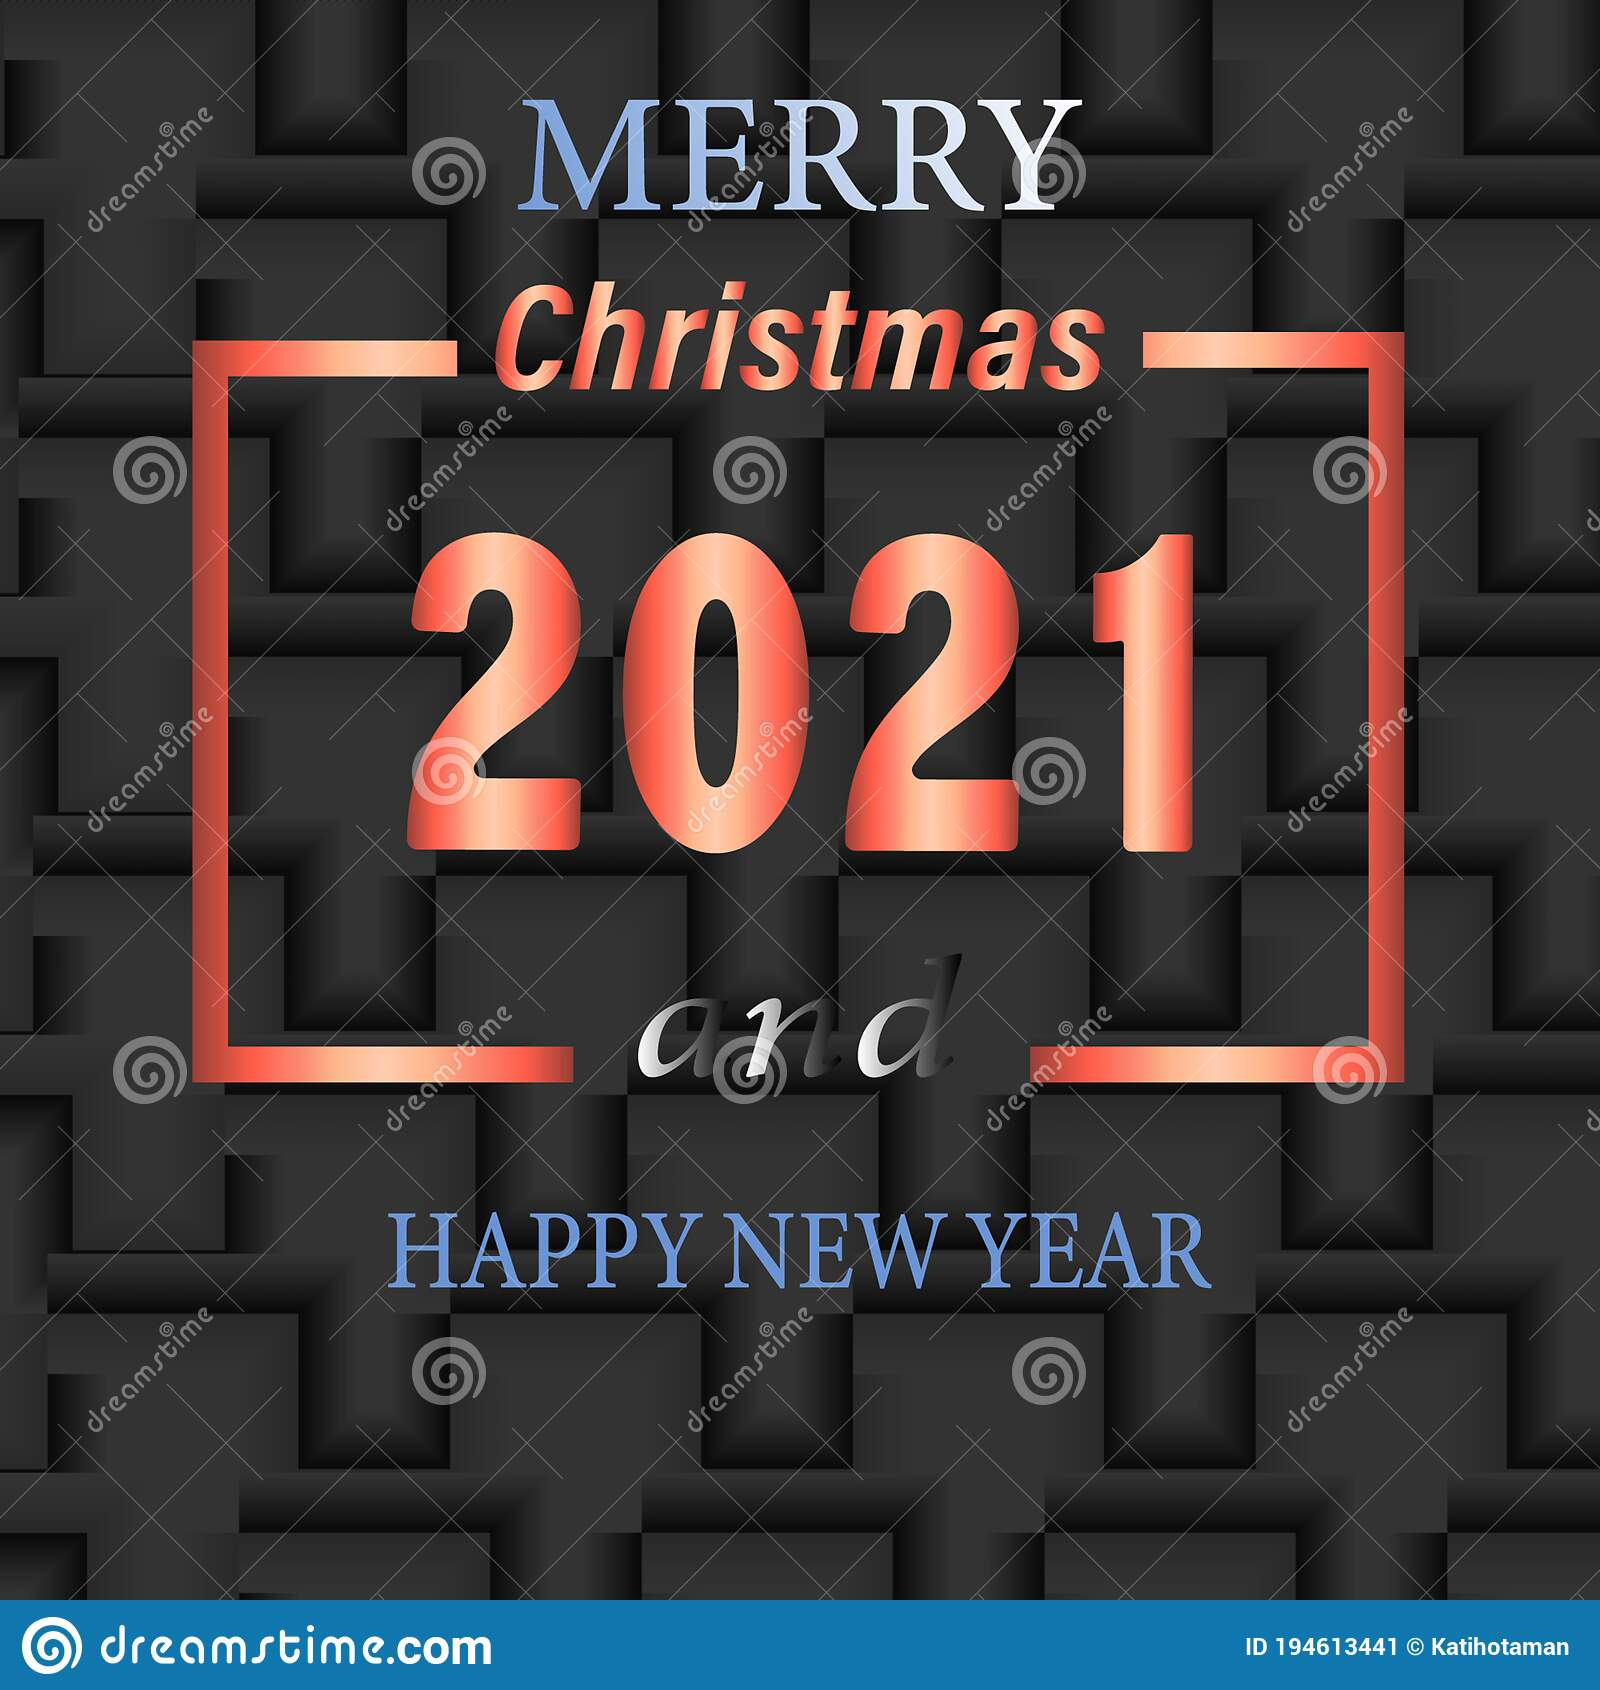 12++ Merry Christmas And Happy New Year 2021 Banner